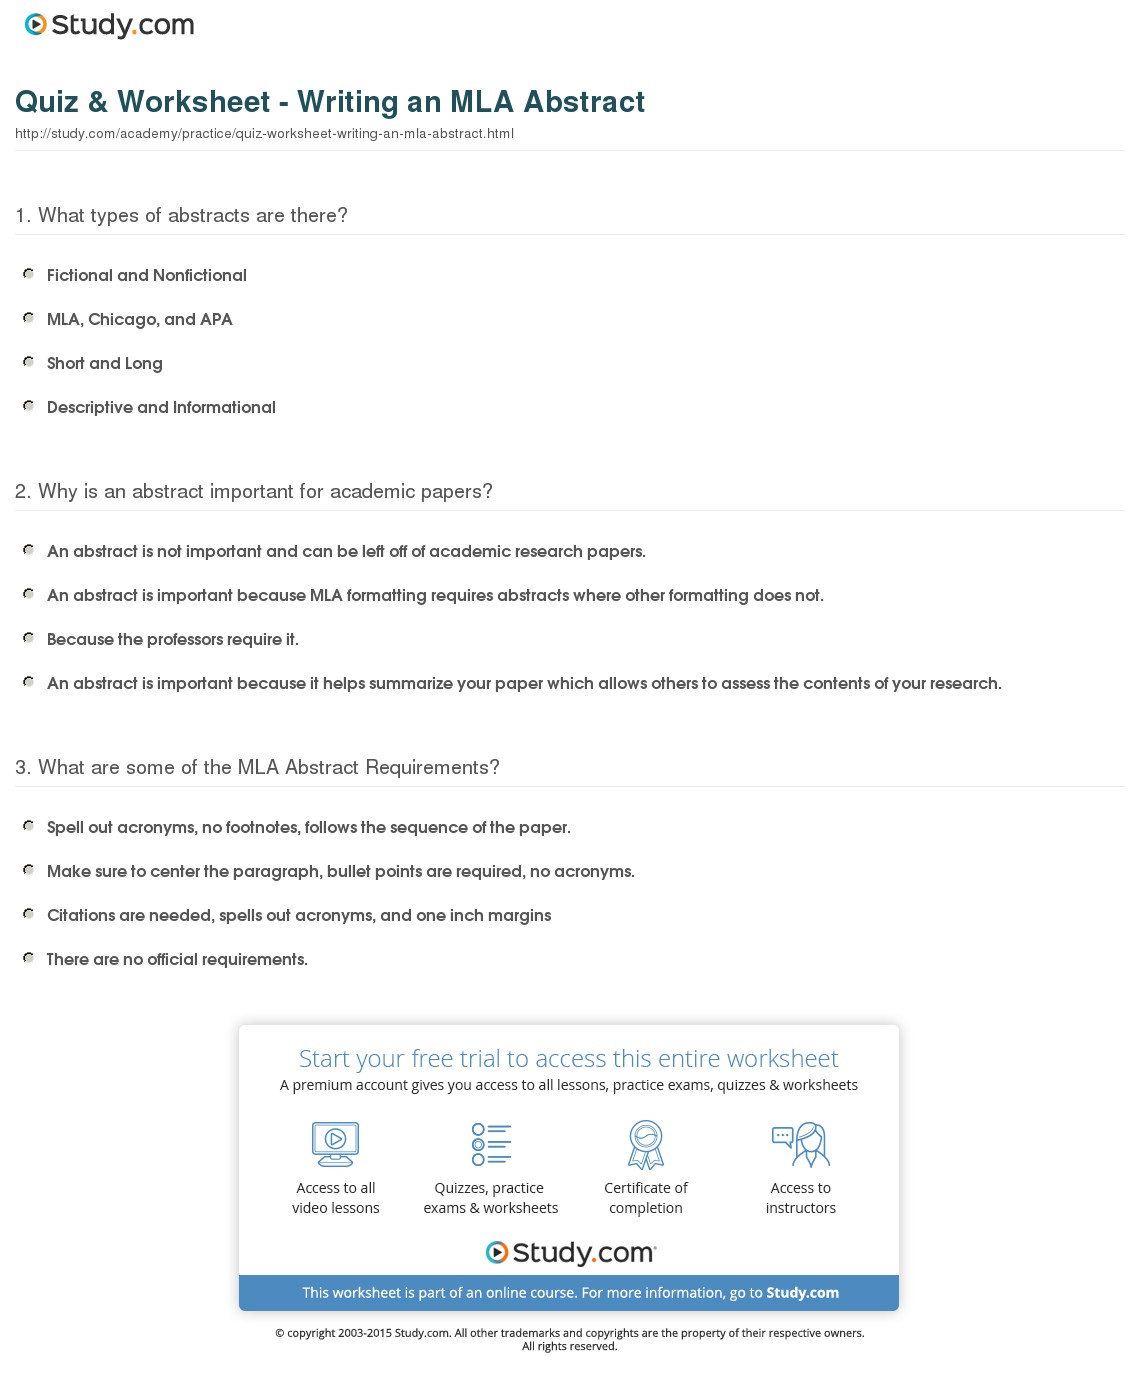 007 Quiz Worksheet Writing An Mla Abstract For Research Awesome Paper Example Full